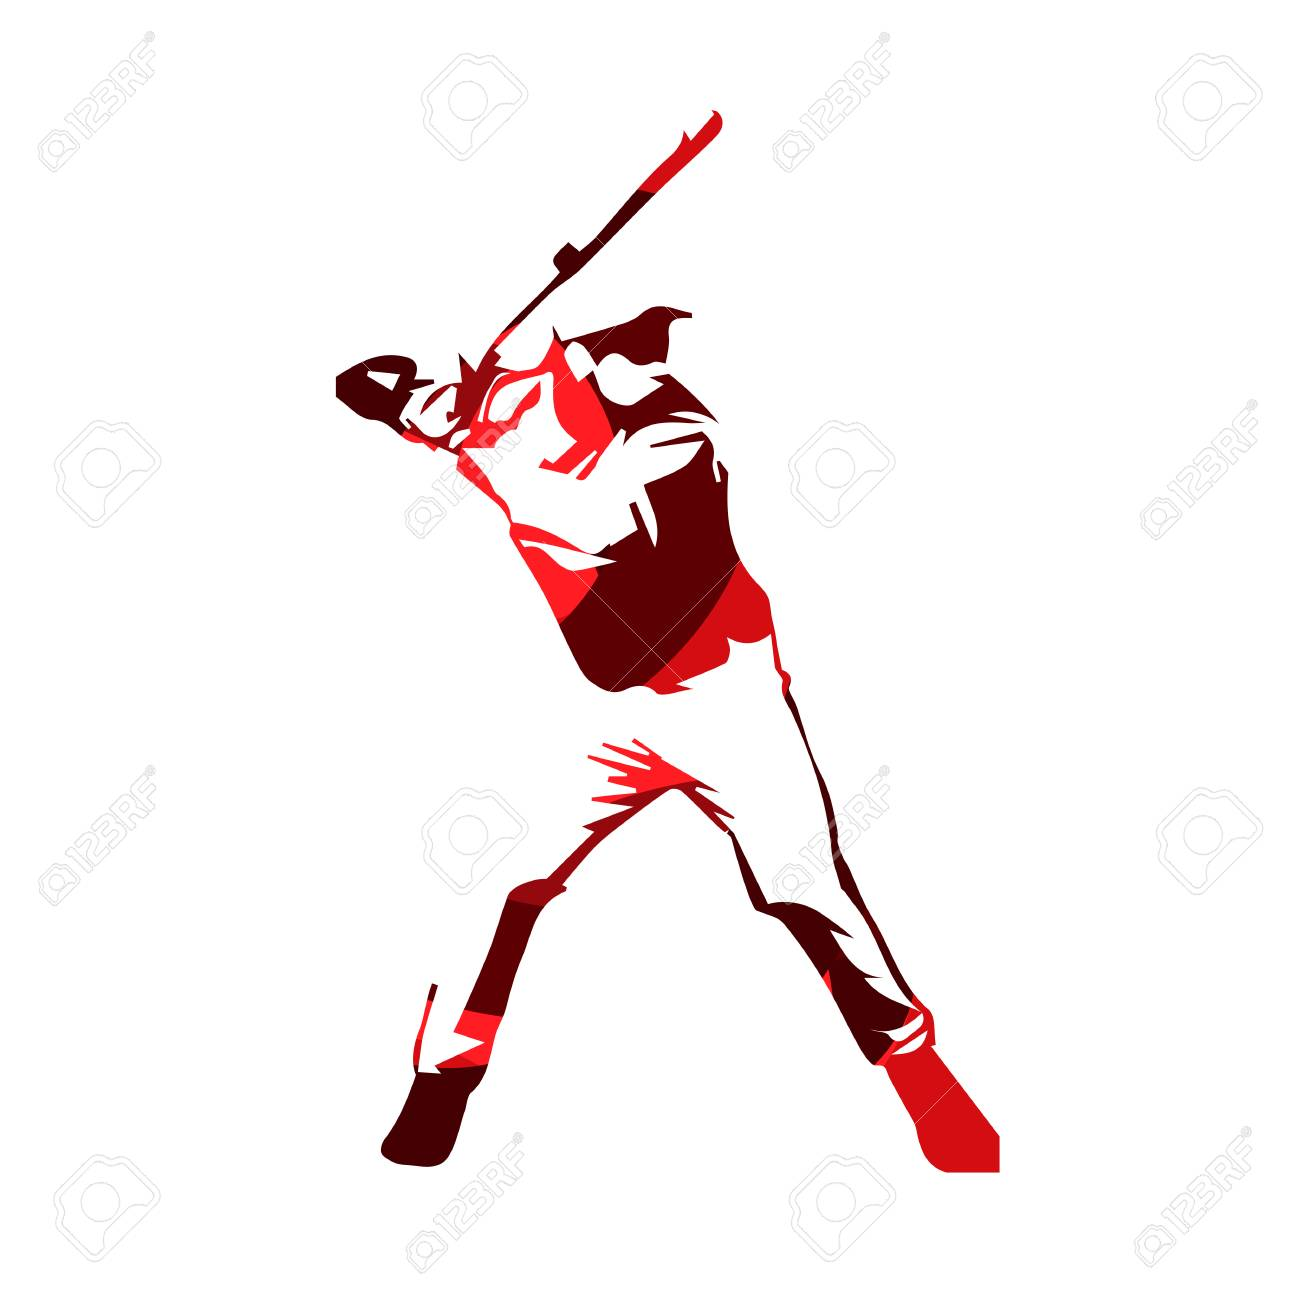 hight resolution of abstract red baseball player vector isolated illustration baseball batter stock vector 68605627